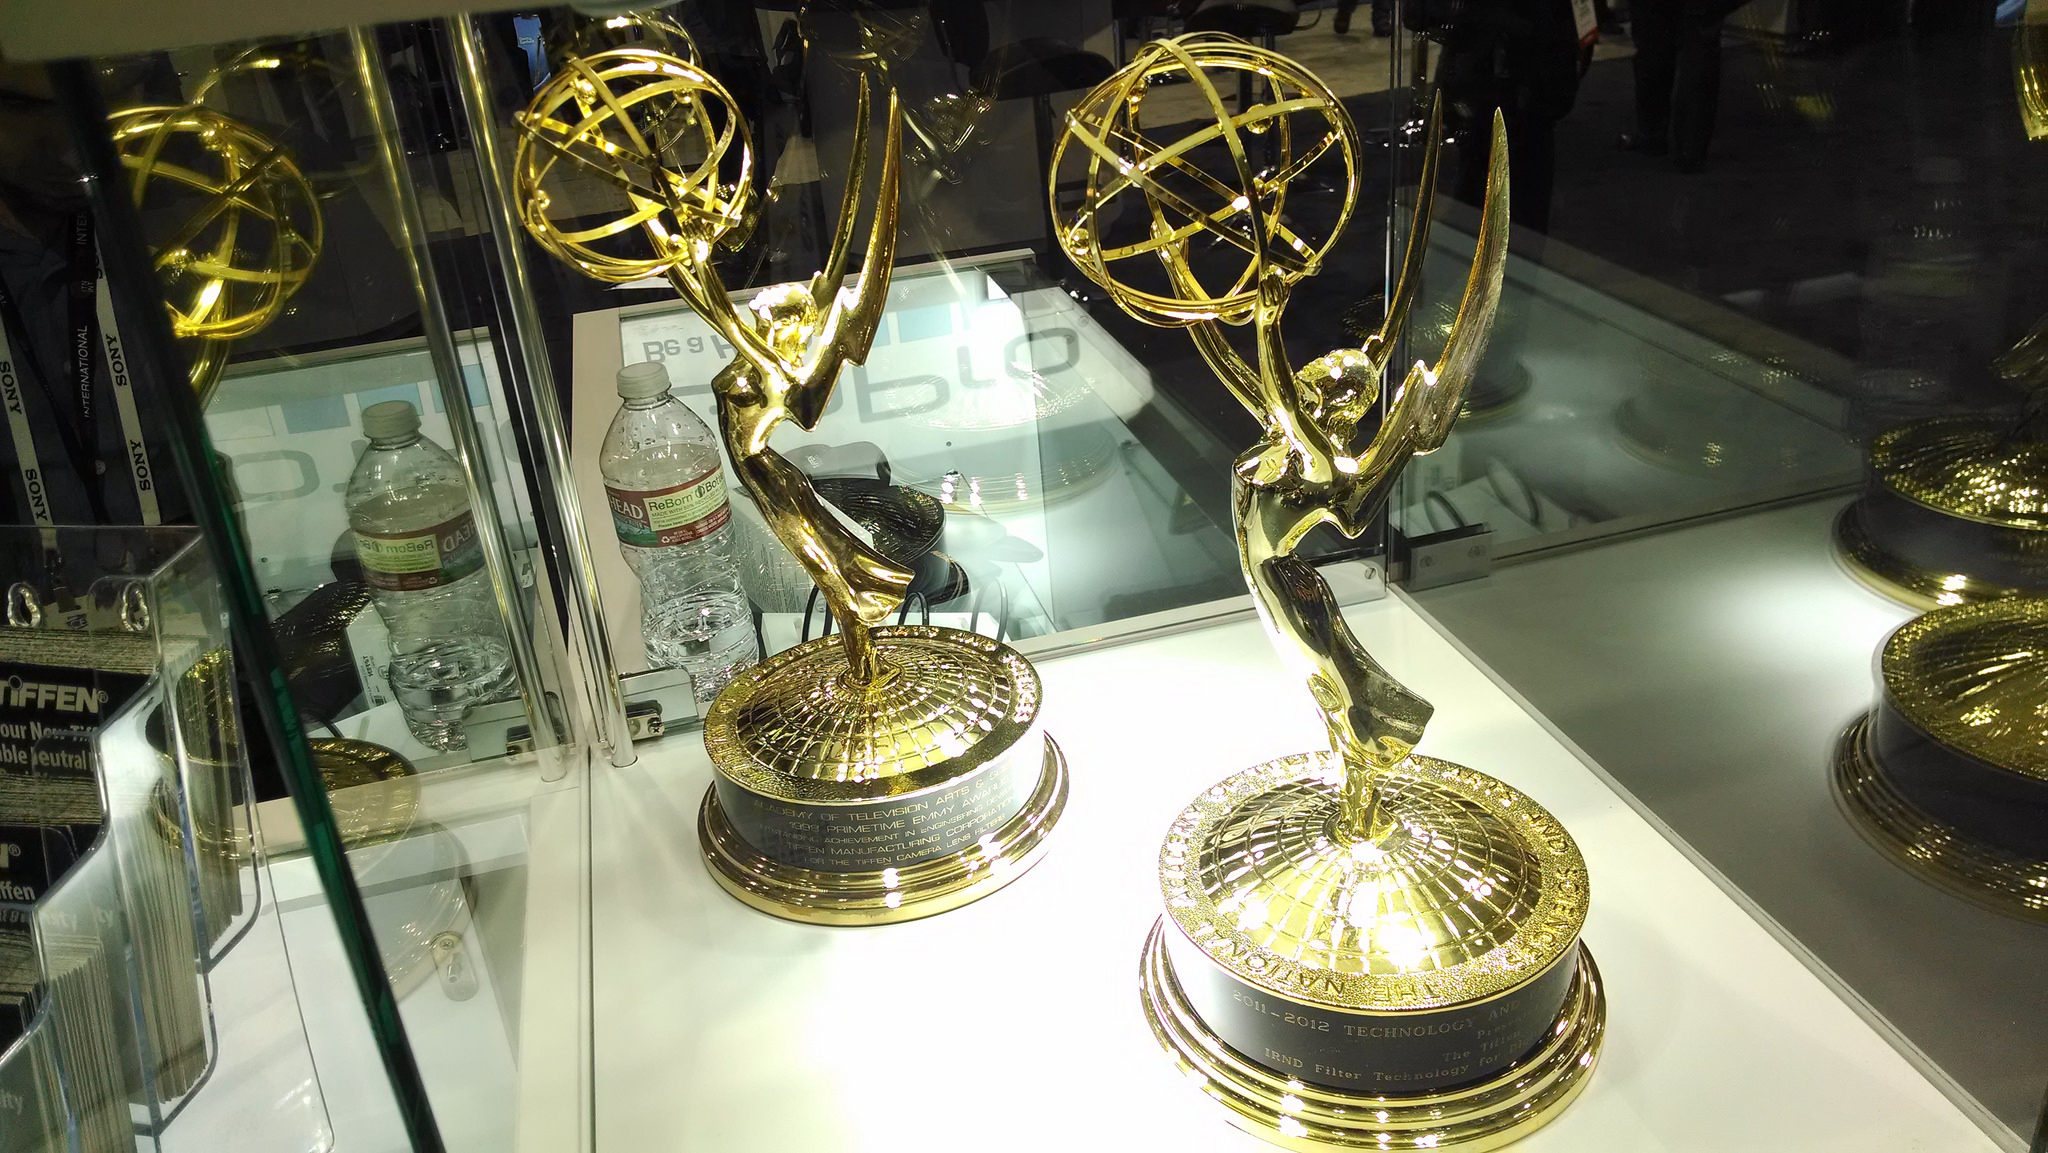 Emmy Award trophies